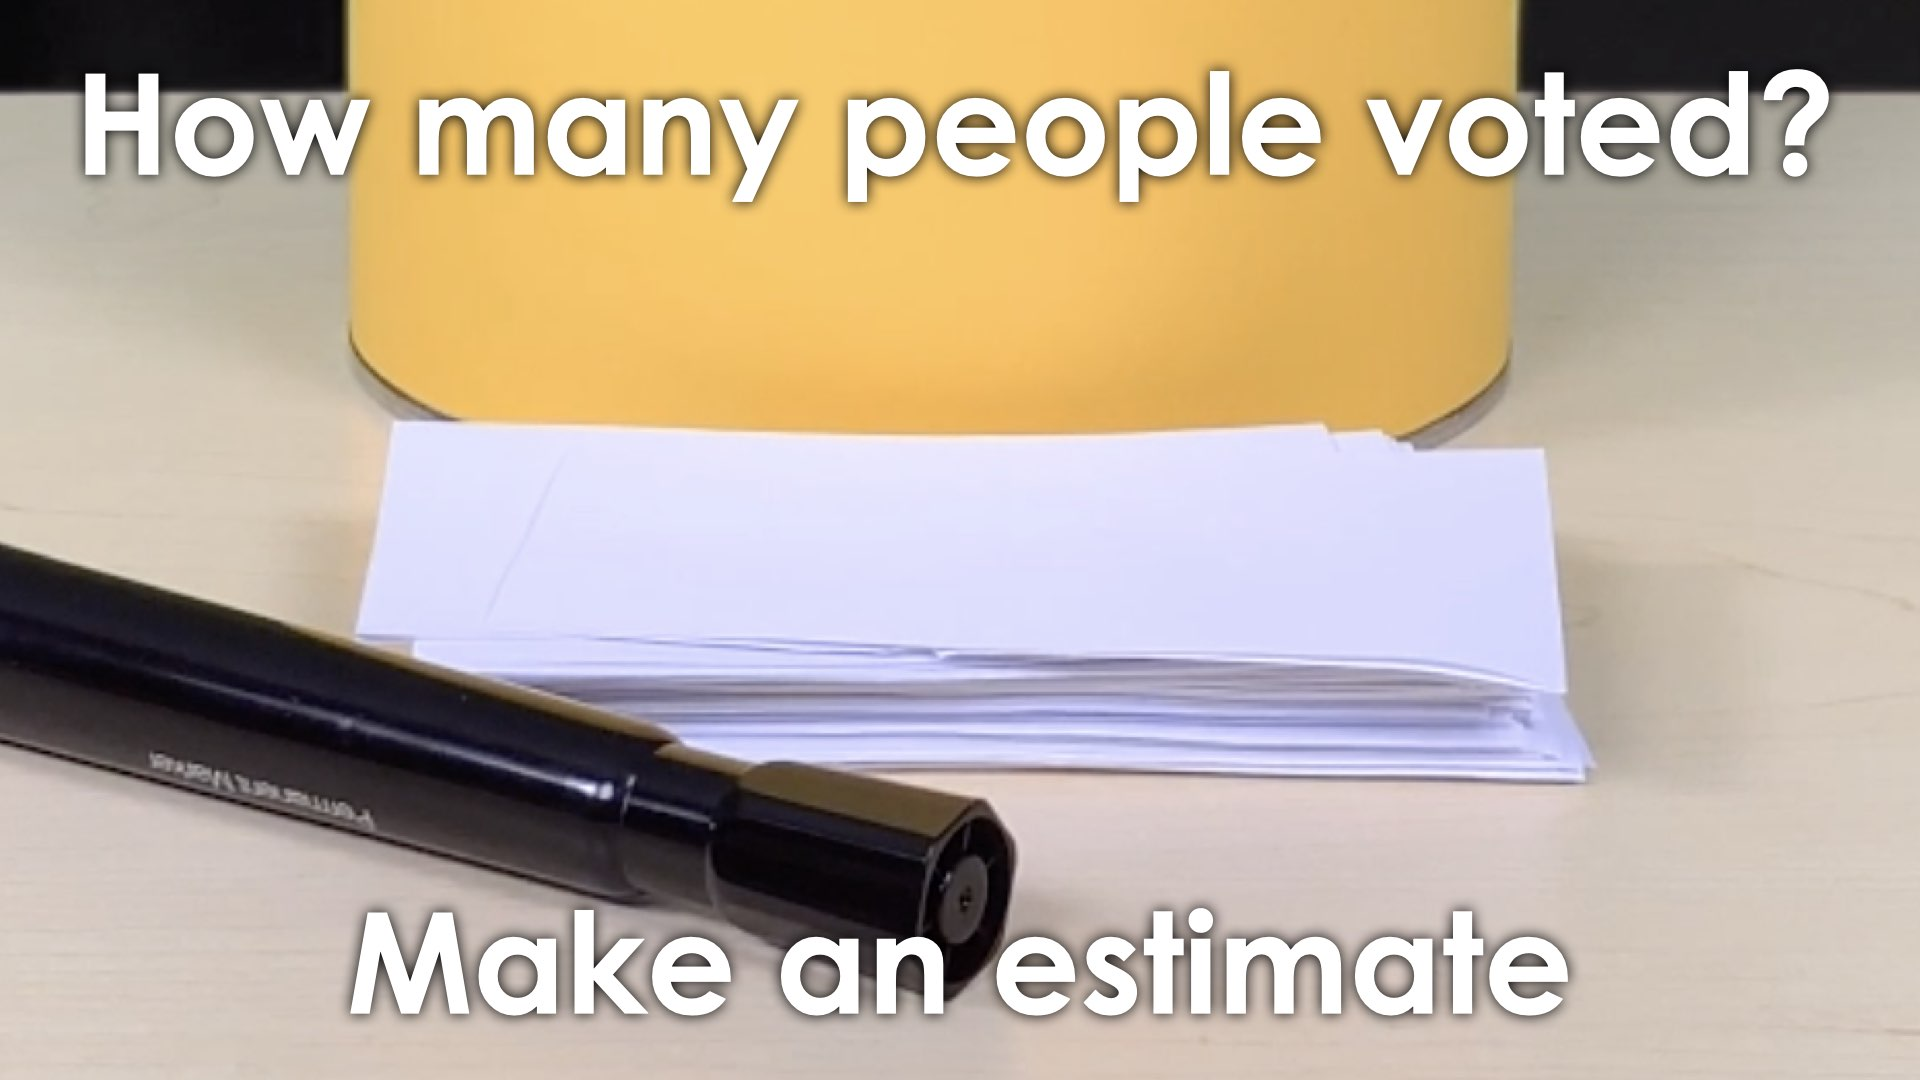 MMM Voting Booth Lesson.015 SPARK Make an estimate close up (1)